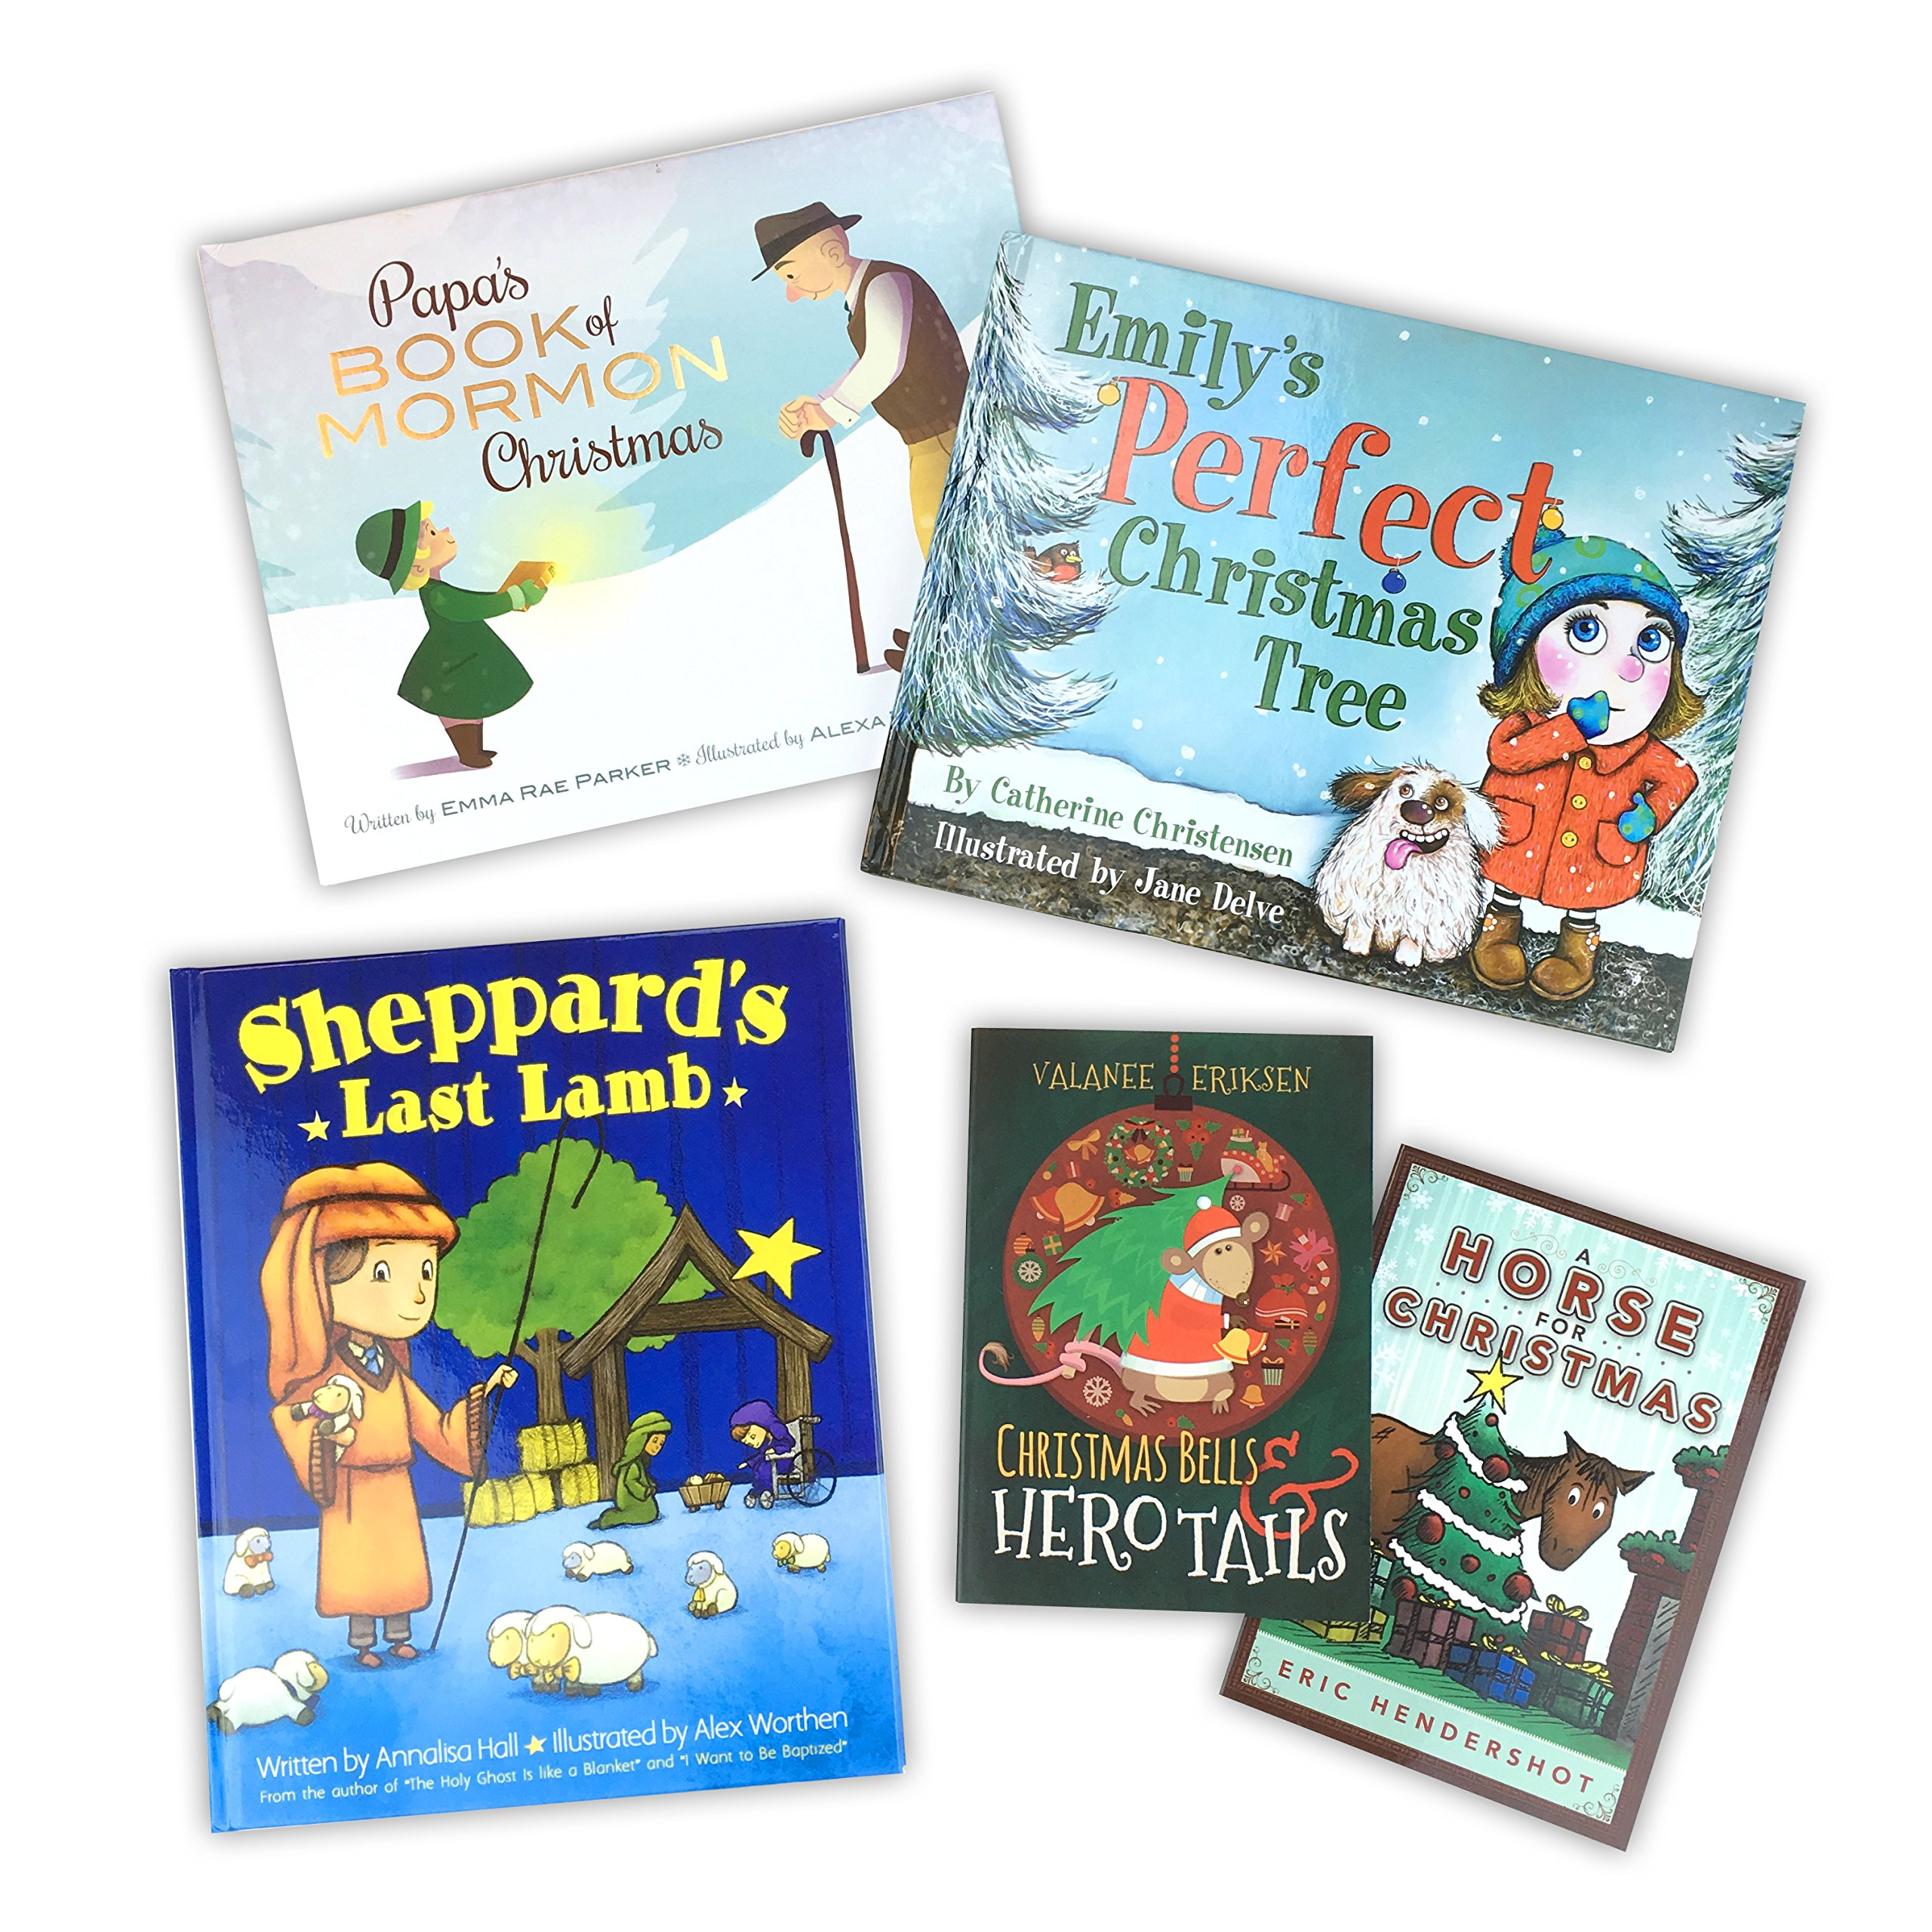 Children's Christmas Book Package, A Horse for Christmas, Christmas Bells and Hero Tails, Emily's Perfect Christmas Tree, Papa's Book of Mormon Christmas